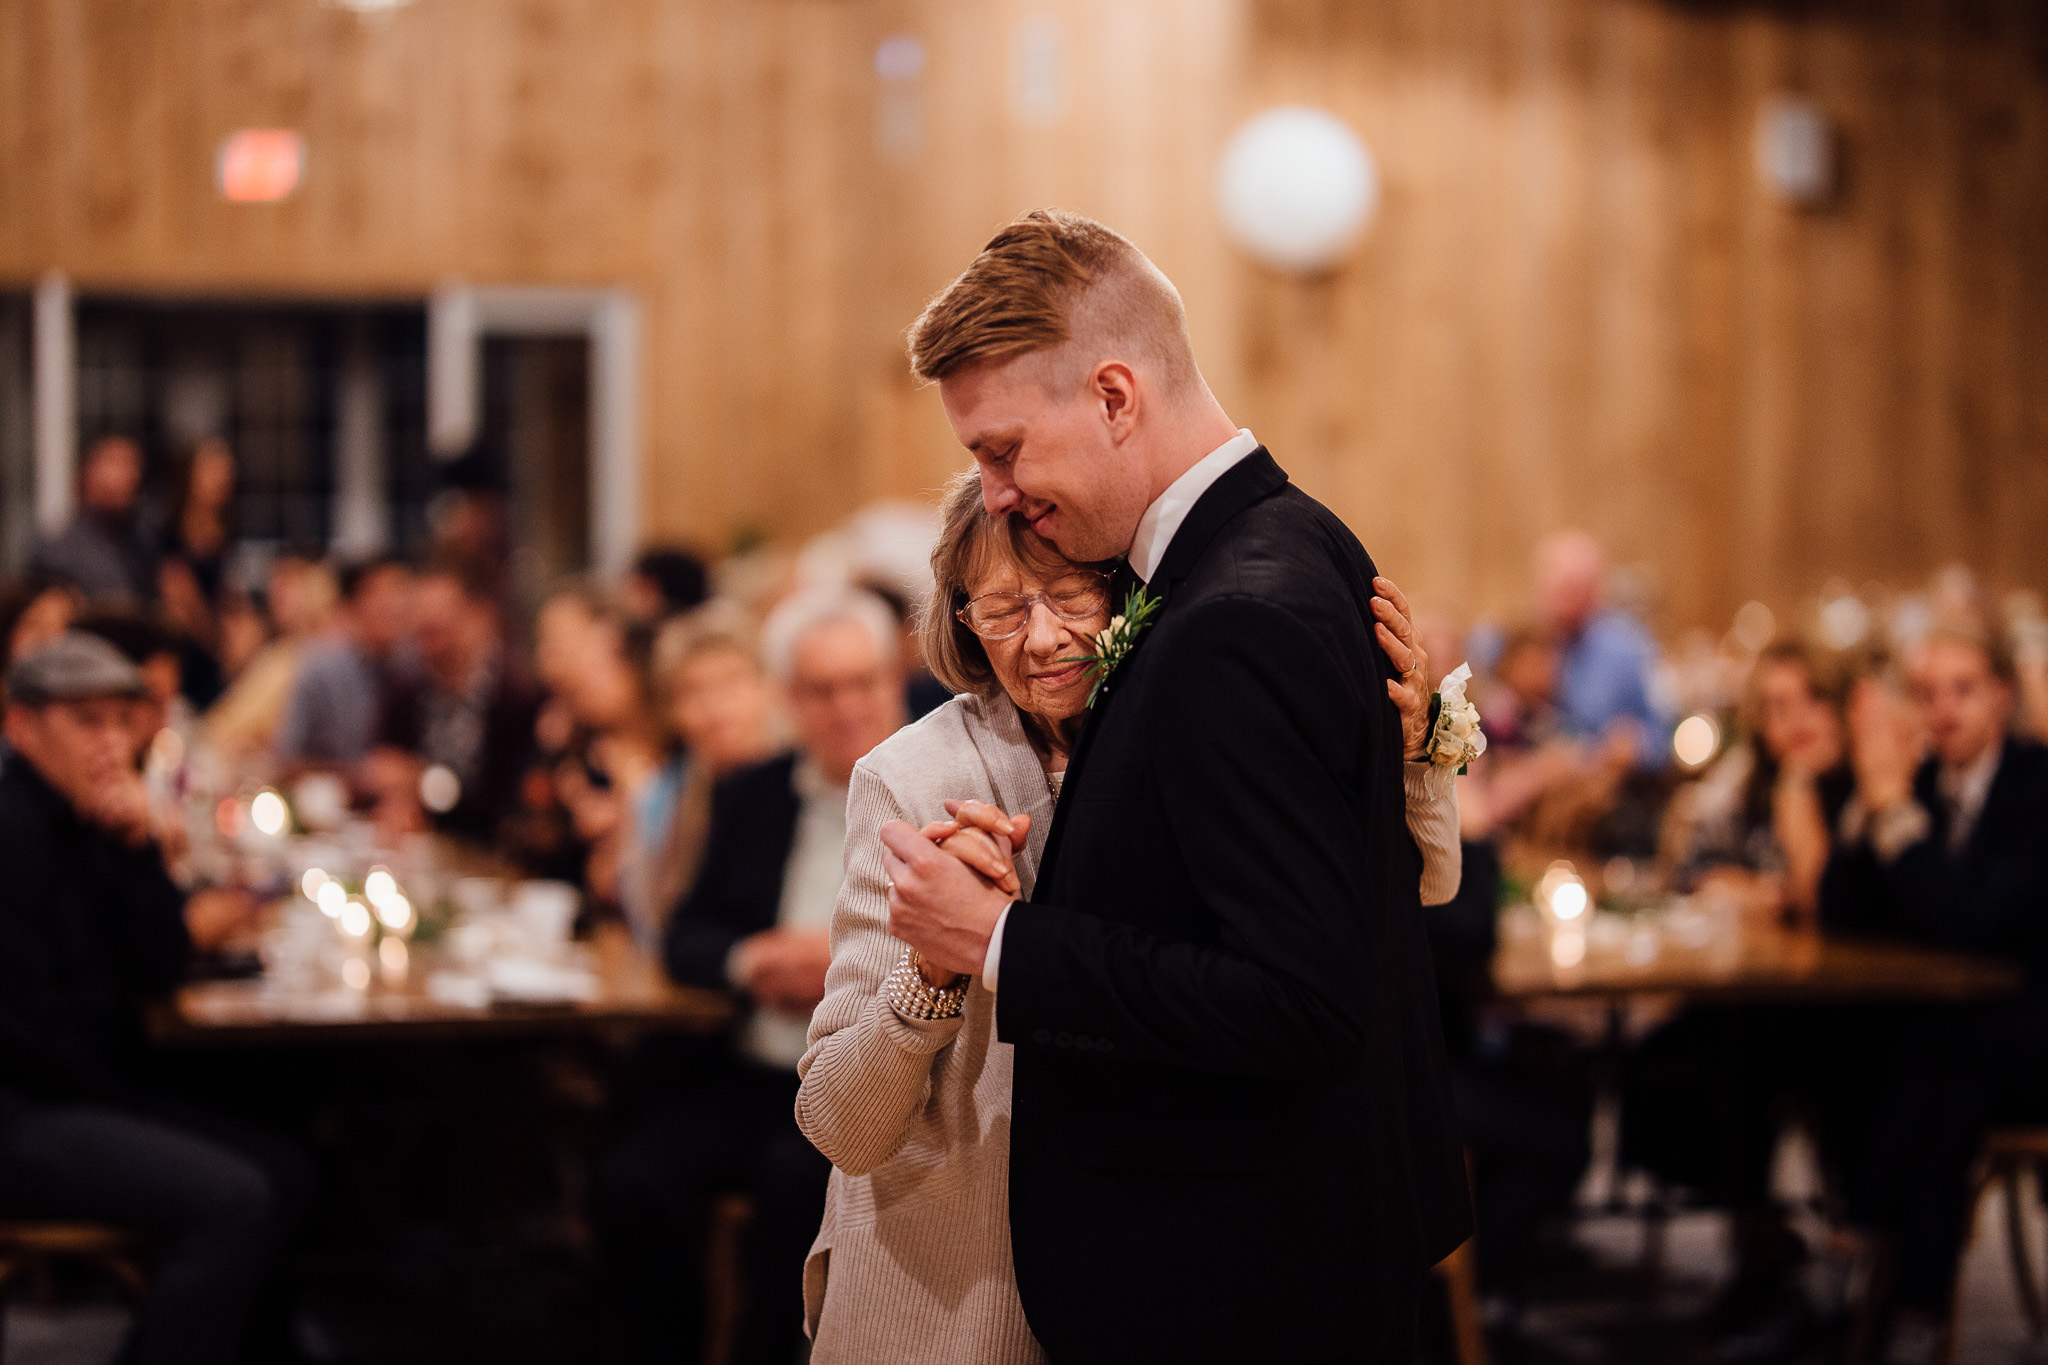 Groom dancing with grandma wedding moments captured by photographer